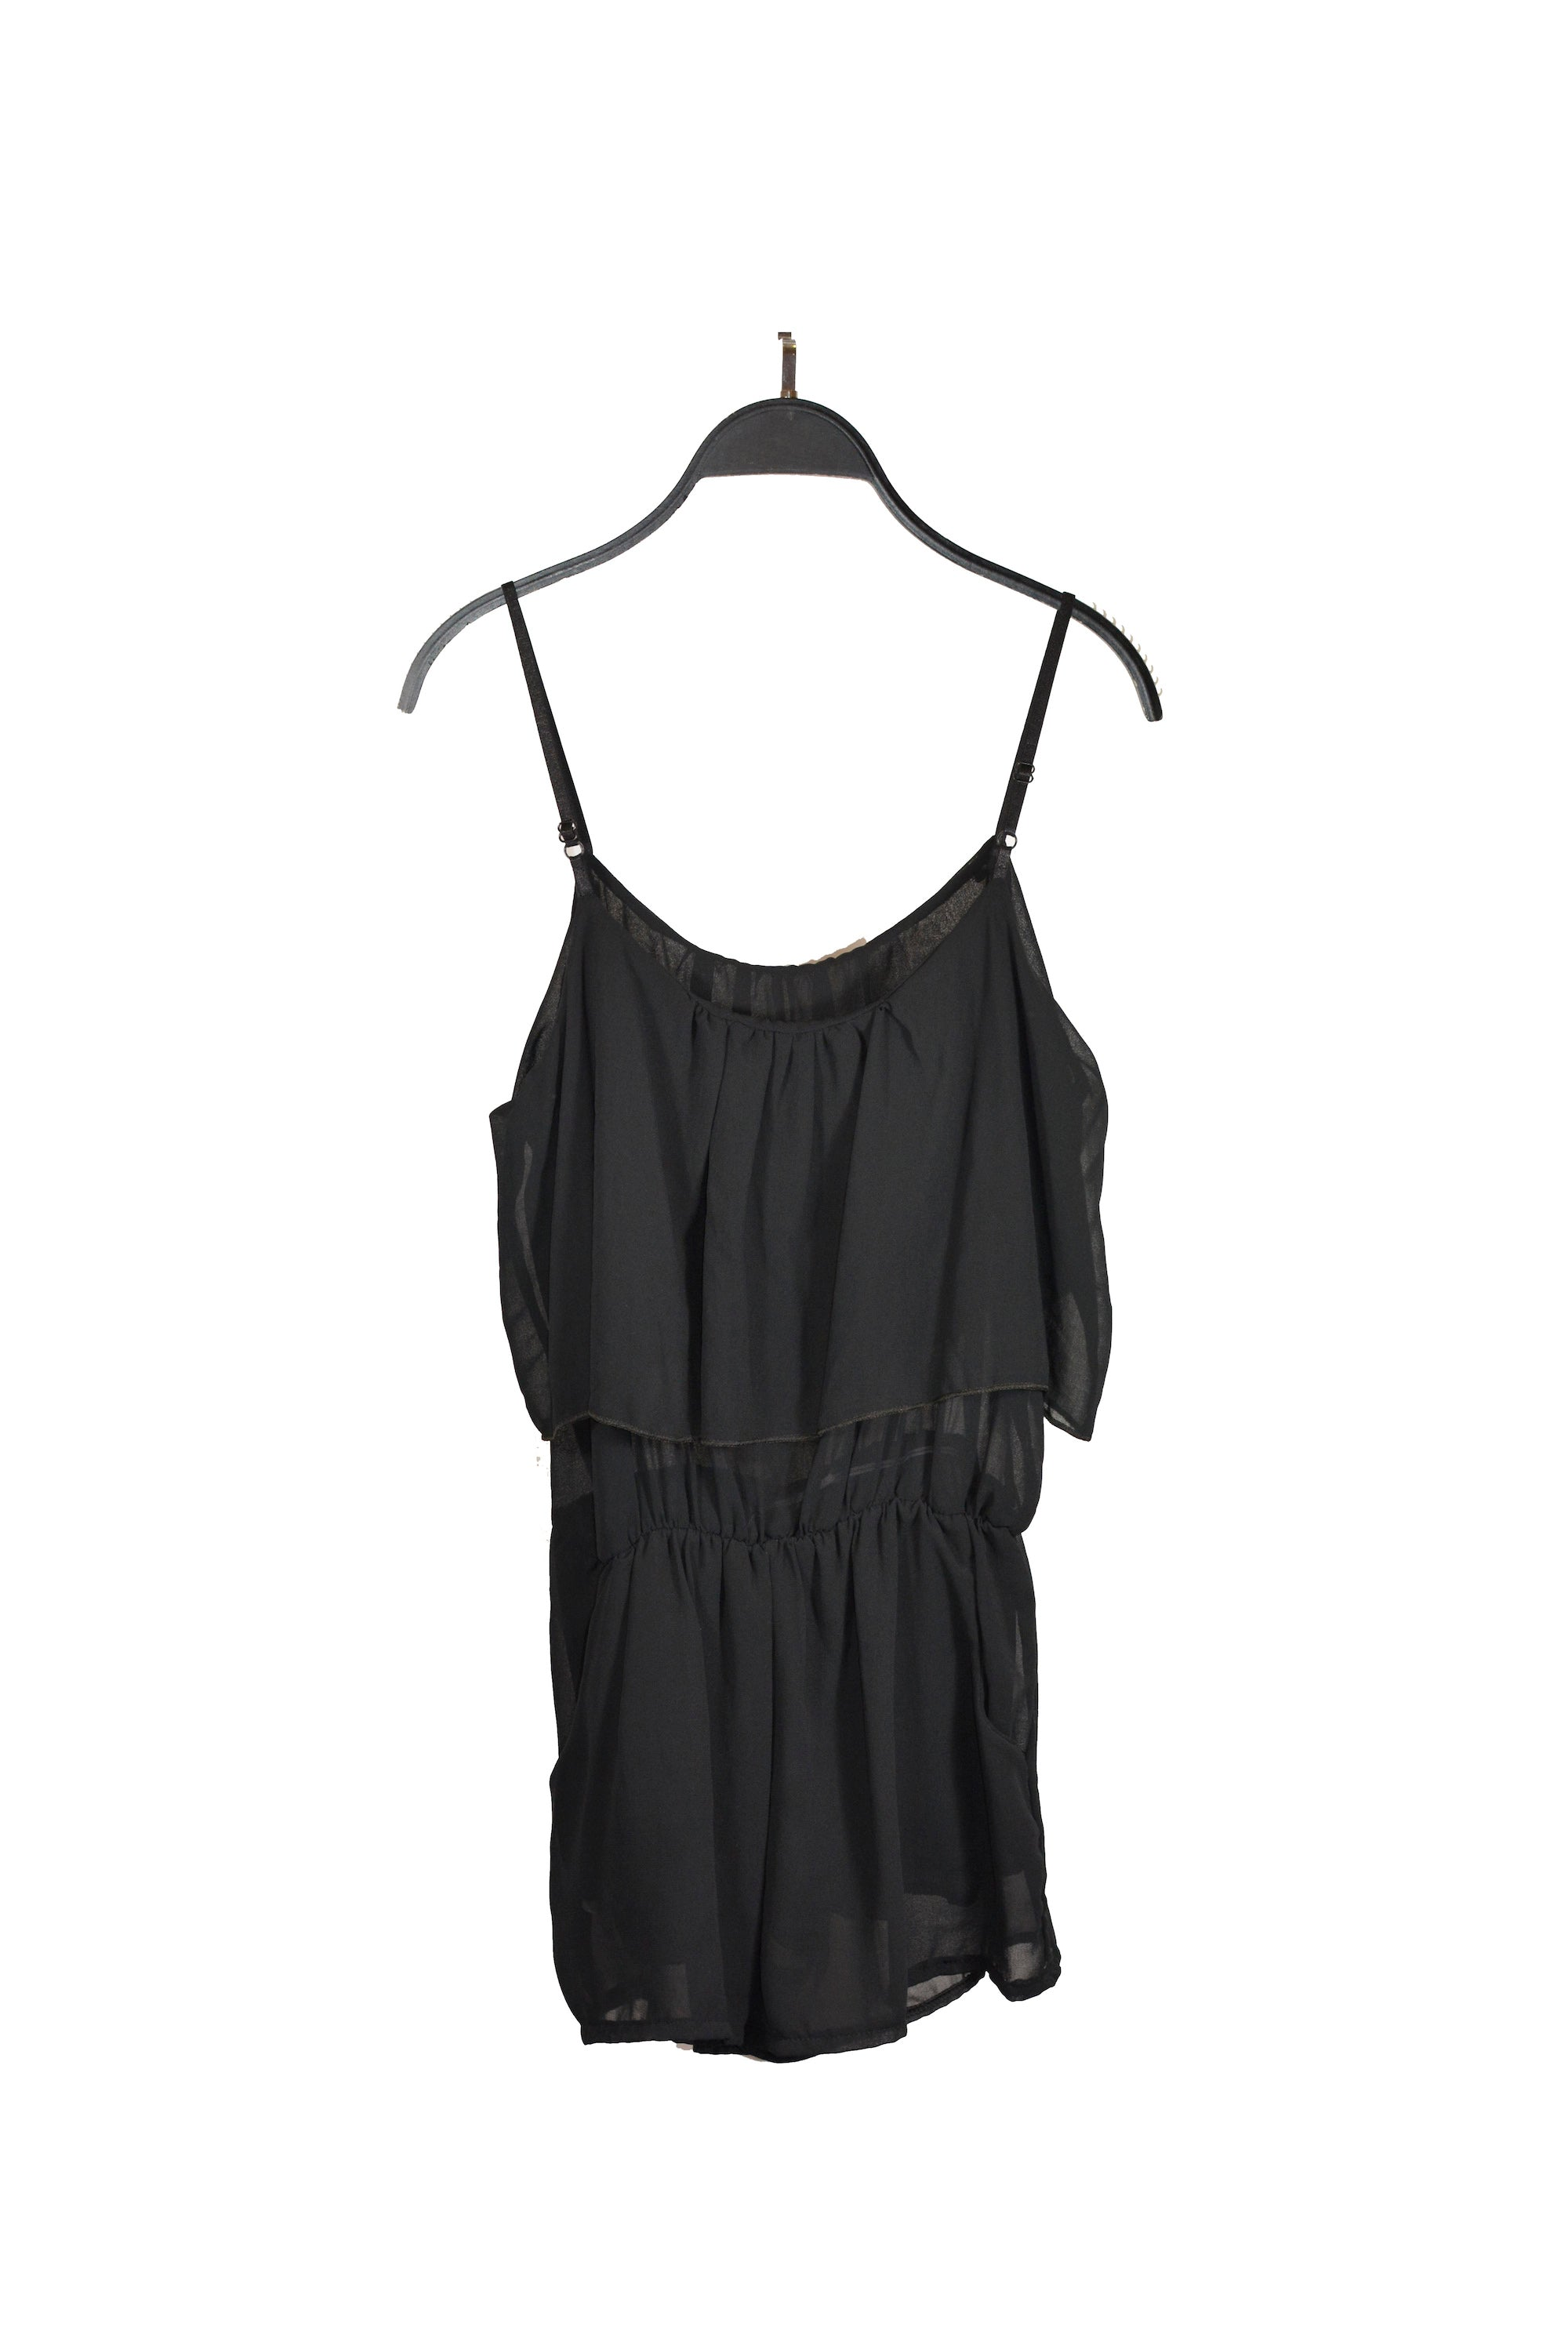 Black Romper With Spaghetti Straps - Ideal For Summer